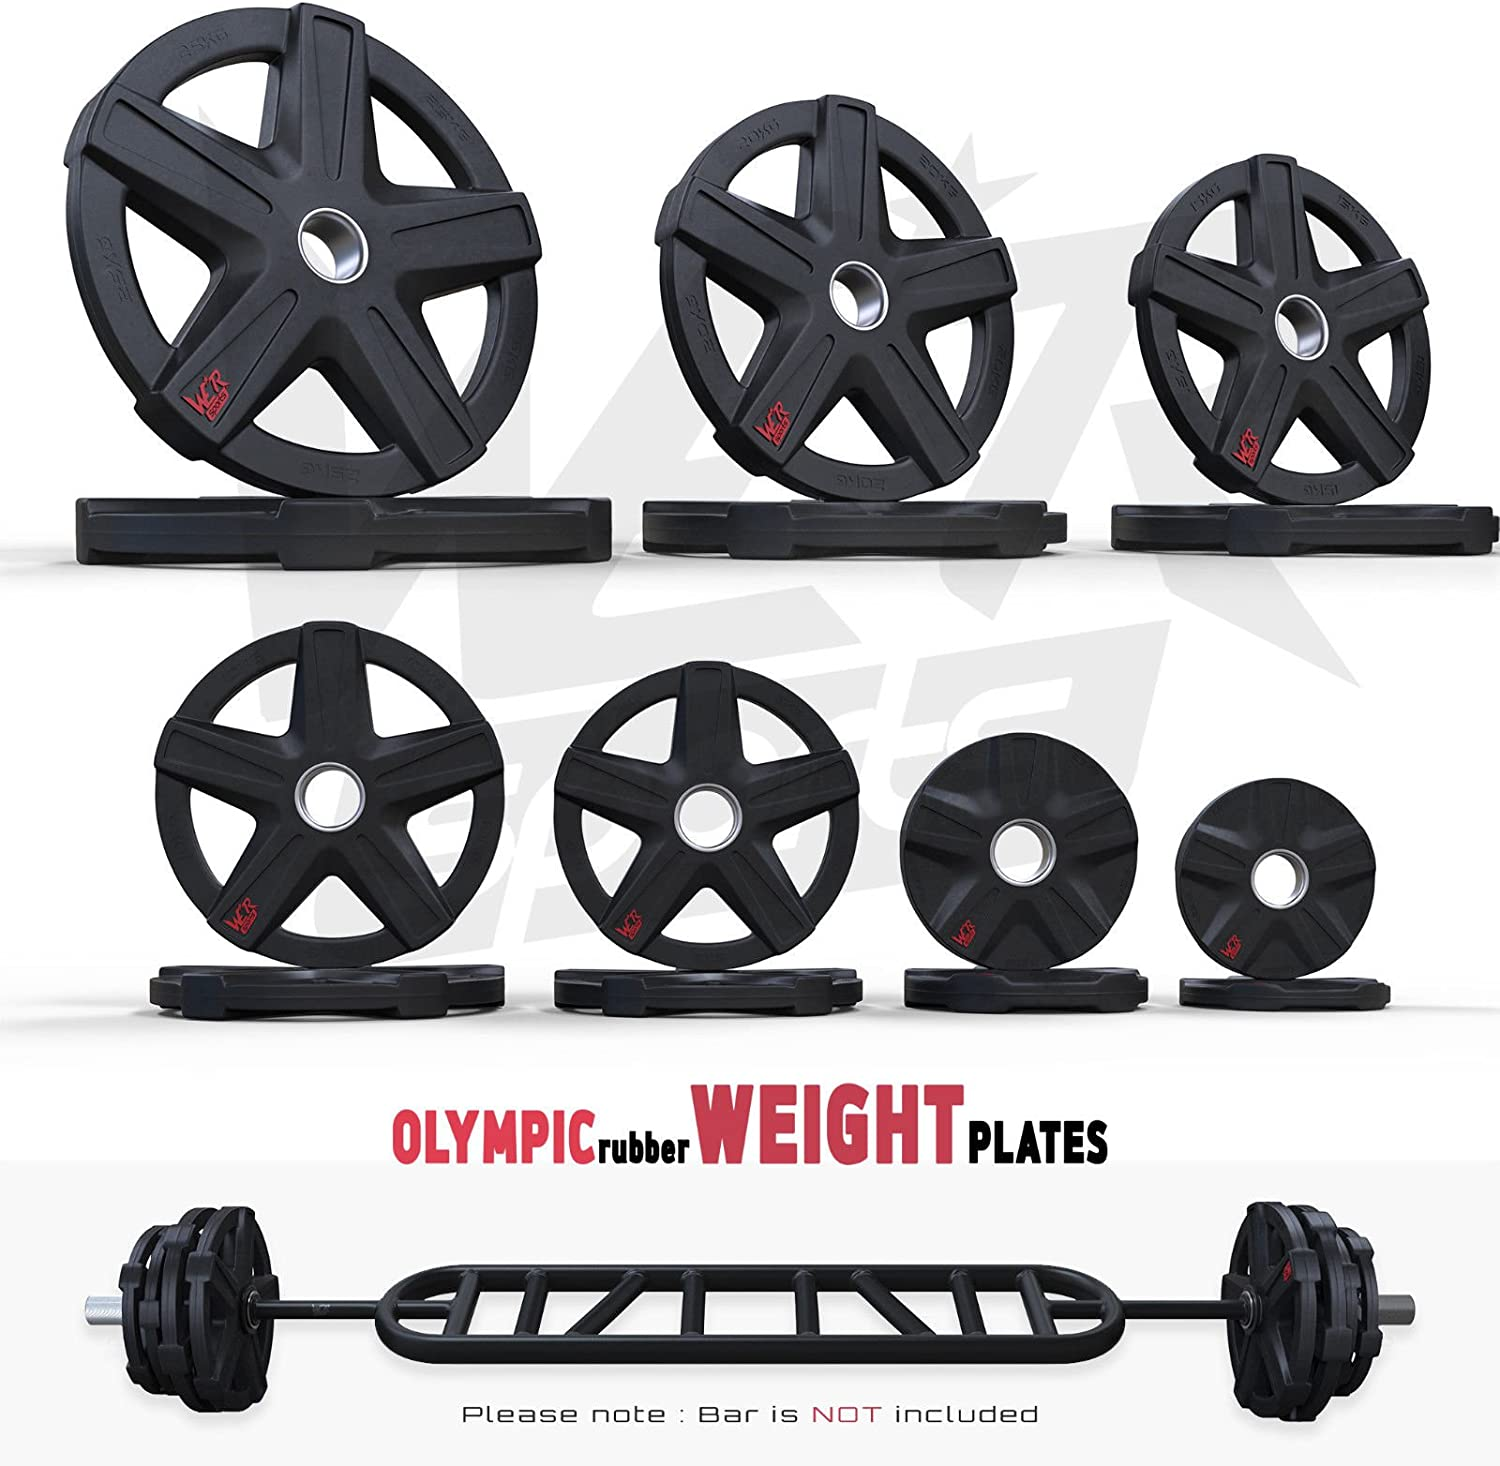 Pair ReXFlex Olympic Rubber Encased Weight Plates Disc Ez Barbell Weights Fitness Gym Commercial Plates Set Of 2